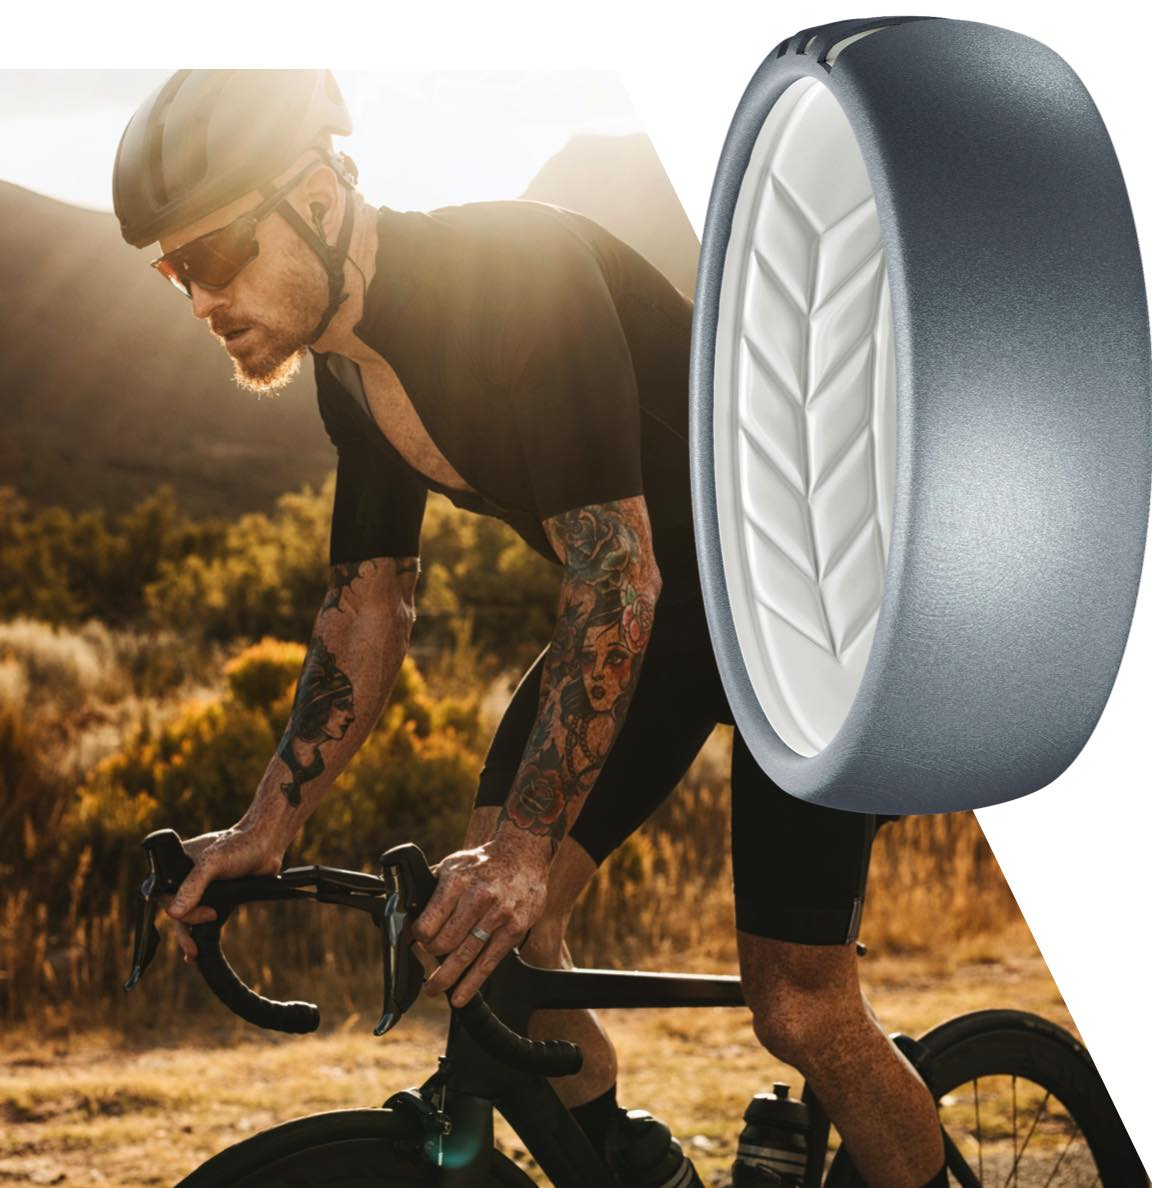 Man working out wearing a Live Ring silicone wedding band